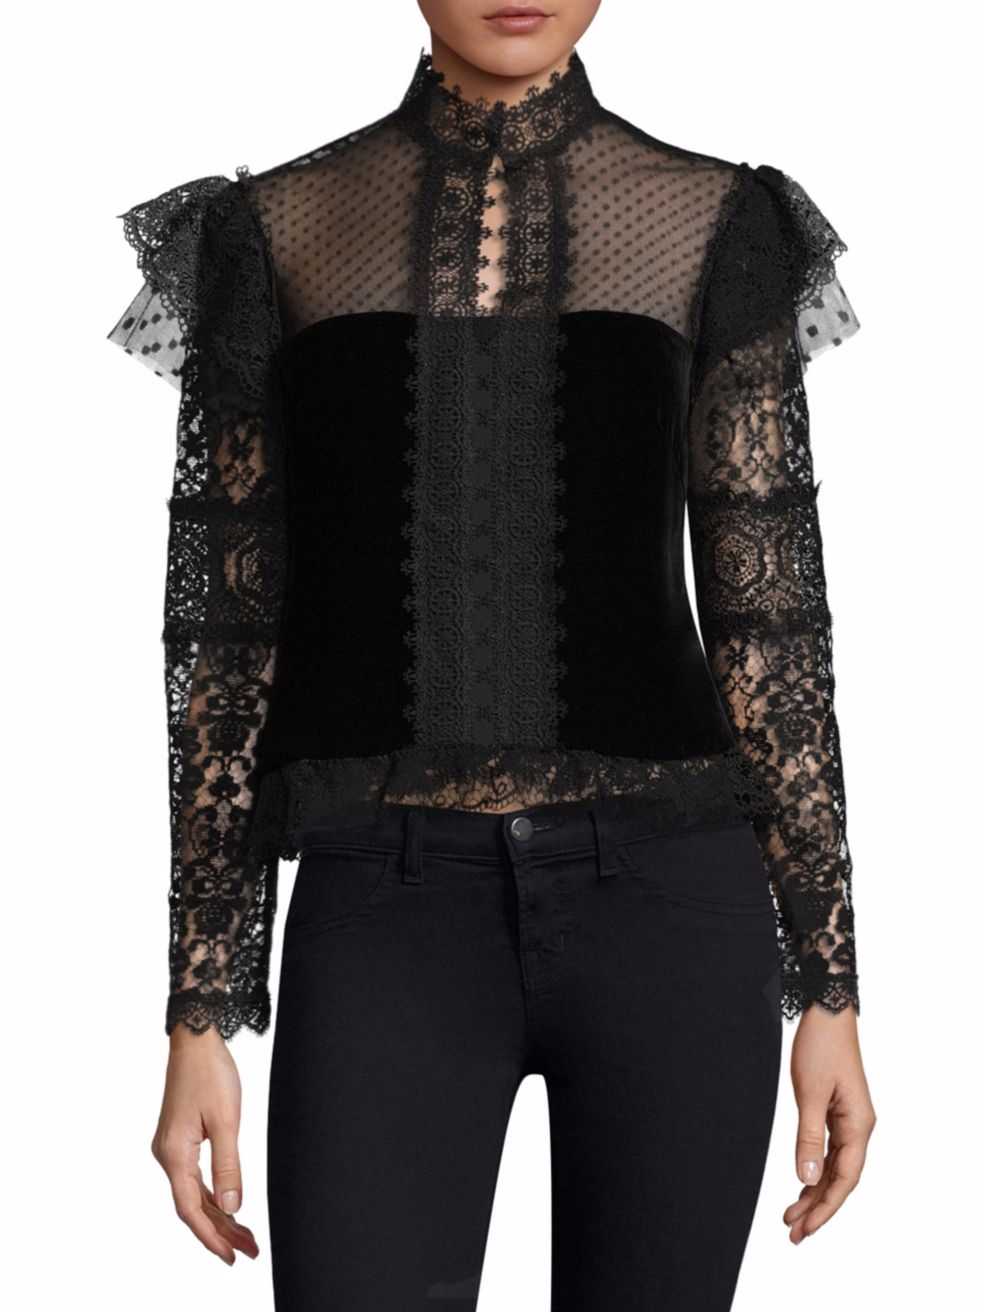 Nanette Lepore - Belle Epoque Blouse - Black